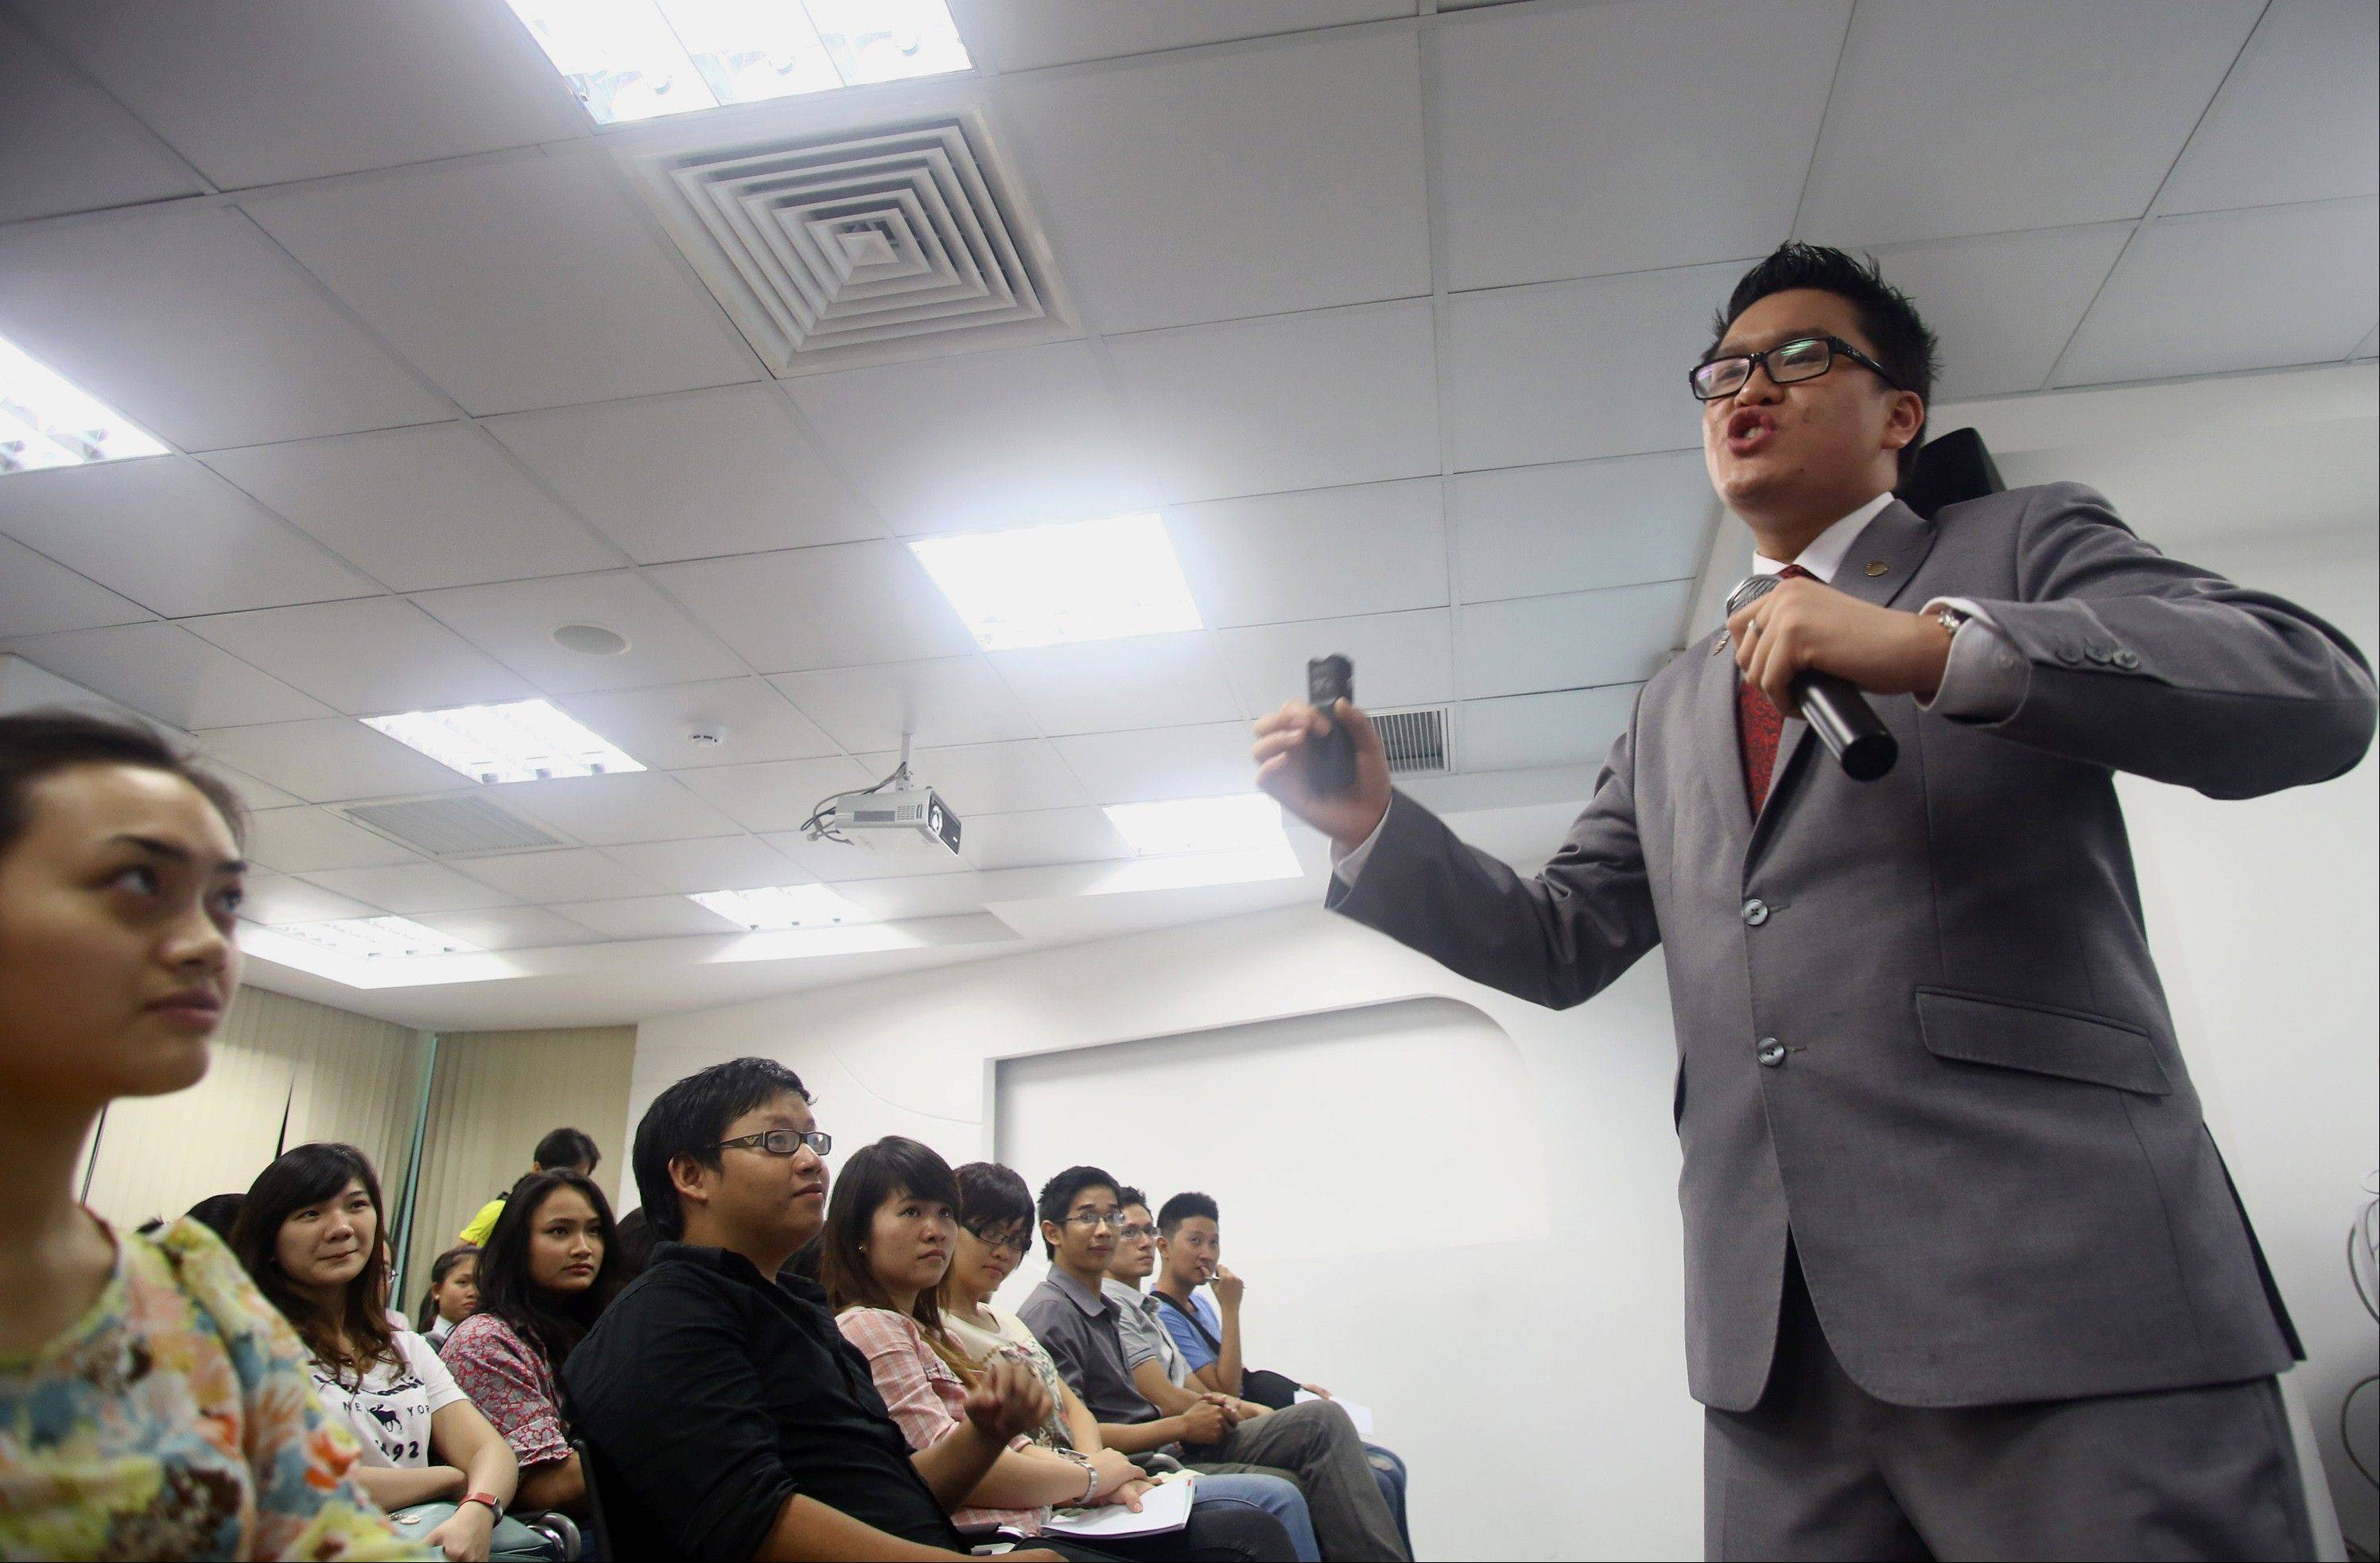 Australian Brian Tan, right, a �blue diamond� sales executive of Nu Skin, a multilevel marketing company, speaks during a presentation to economic students to expand and recruit distributors for his sales system at Nu Skin�s office in Ho Chi Minh City, Vietnam. Nu Skin, which has stormed through Asia over the last two decades, racked up huge profits despite regulatory scrutiny over its marketing practices and the efficacy of the products that it sells.